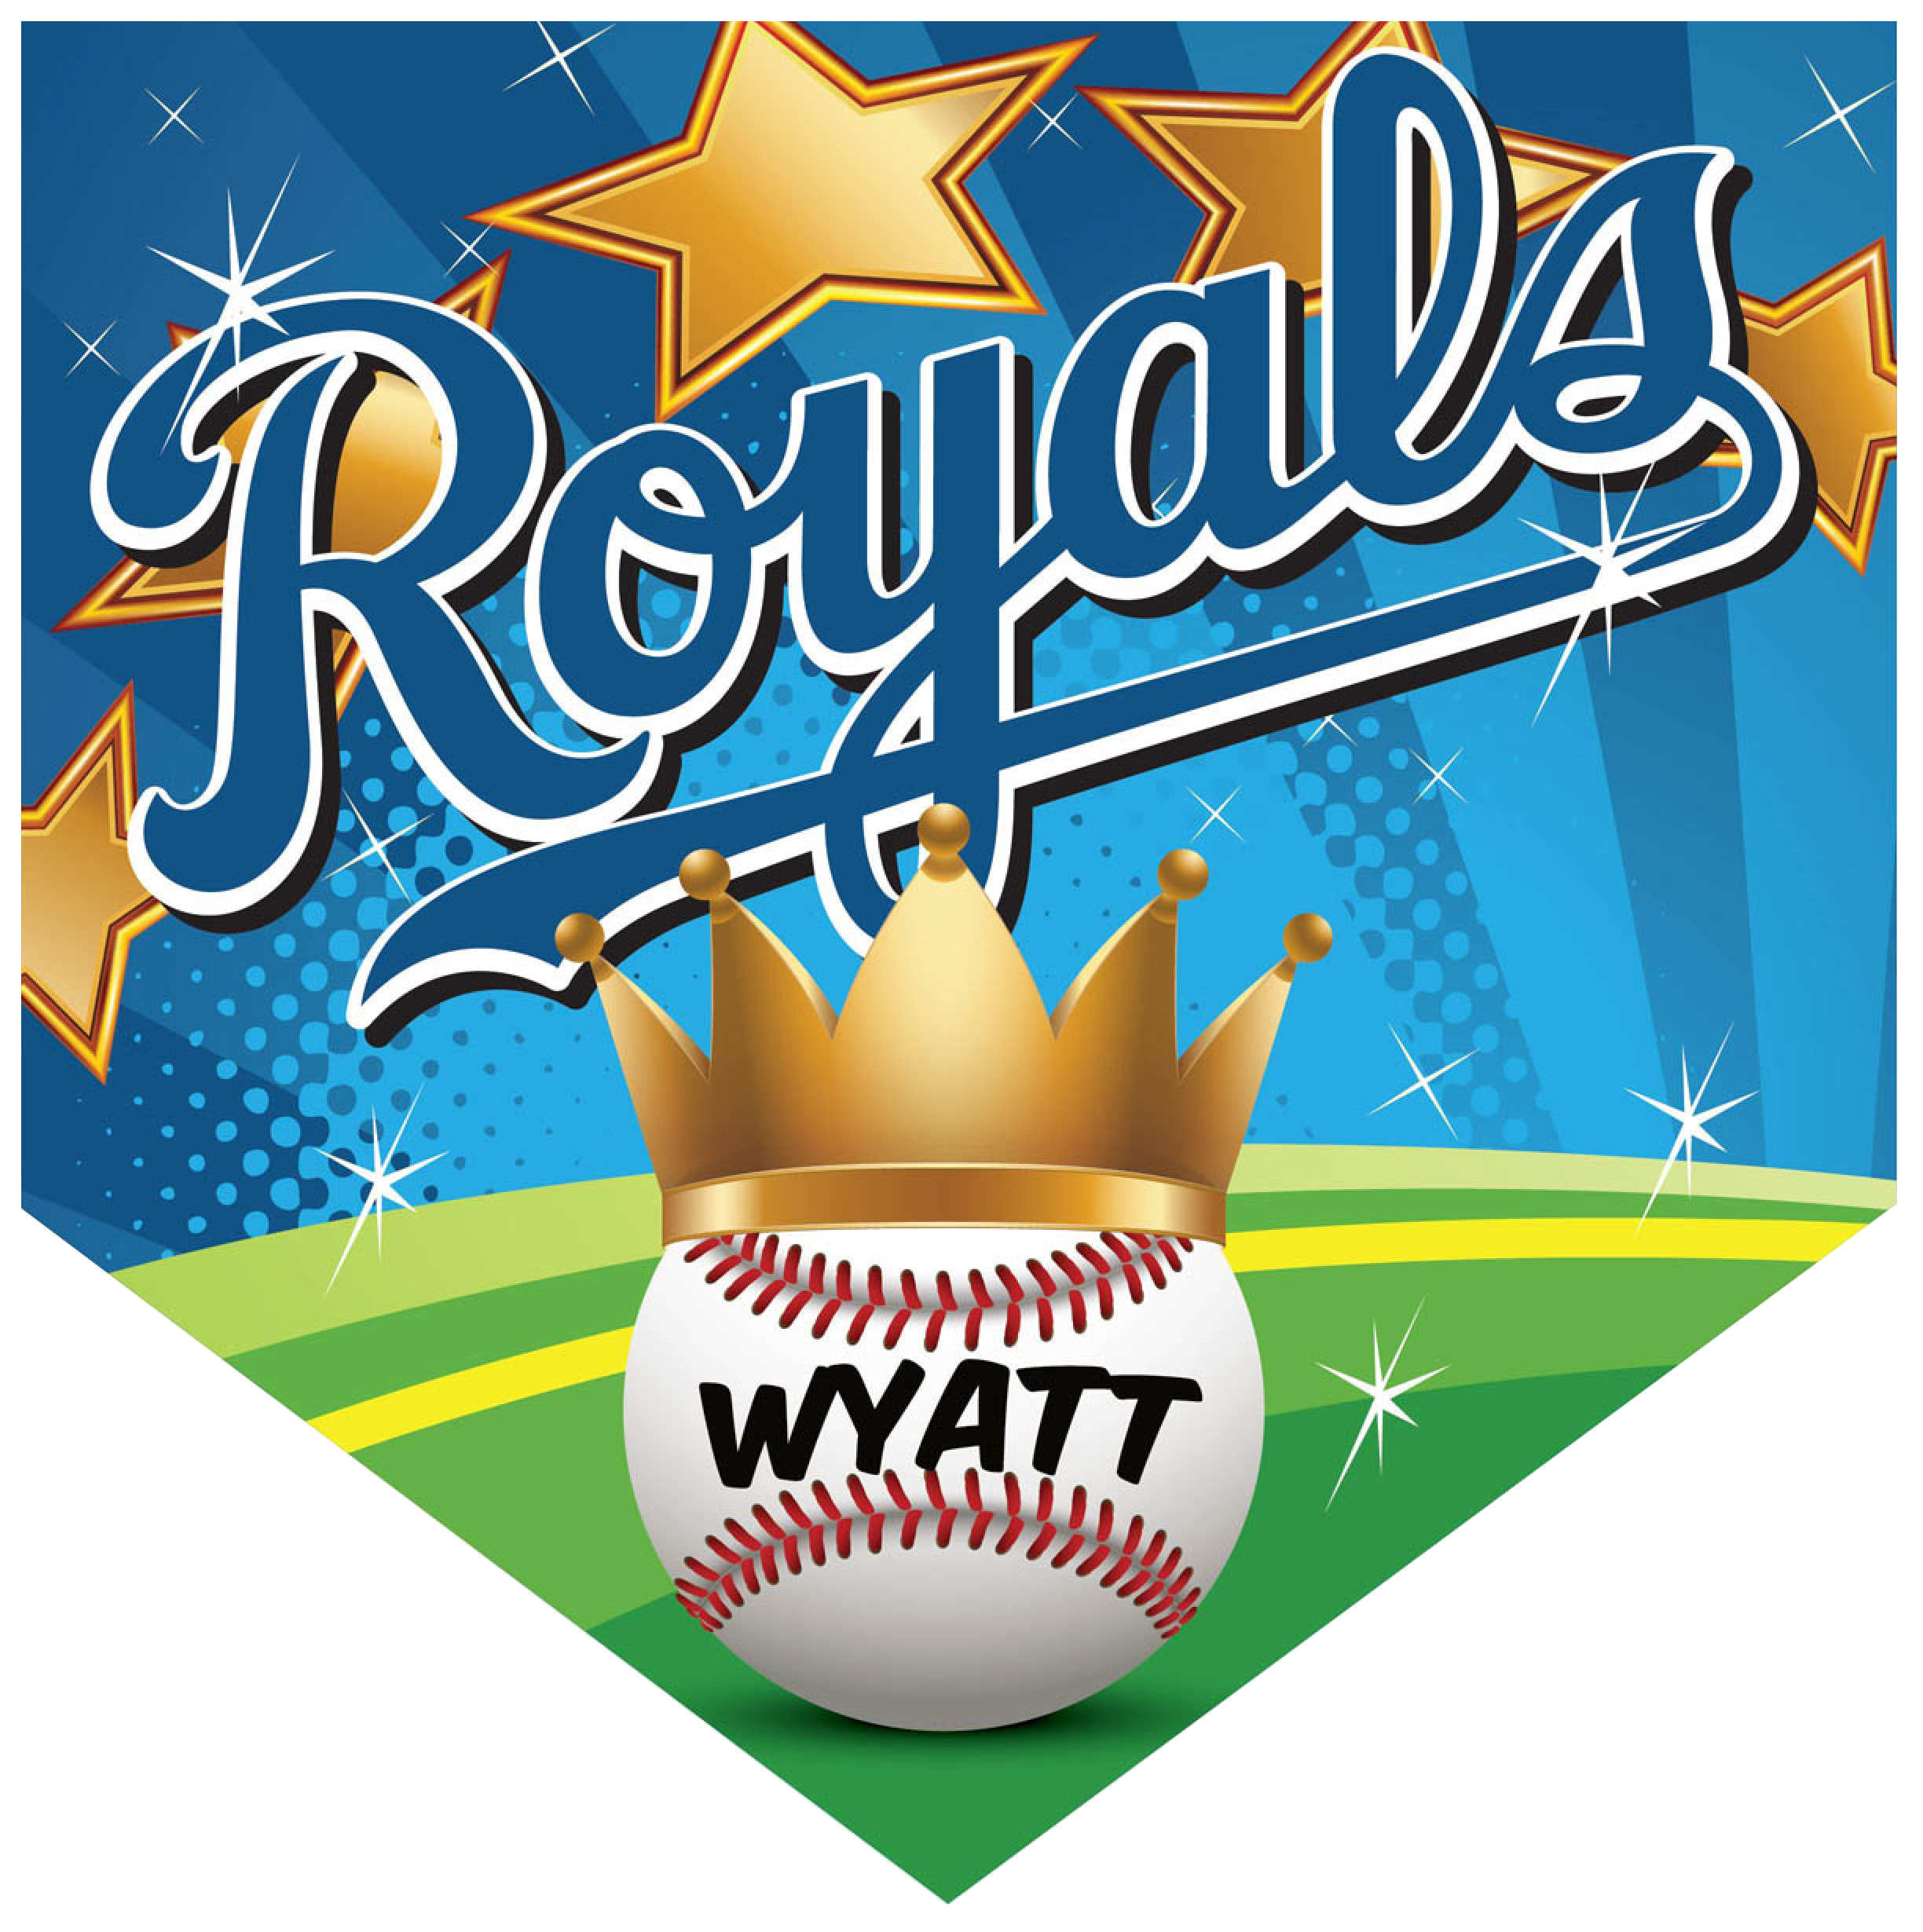 Baseball crowd clipart clipart library stock Royals Home Plate Individual Team Pennant - Custom Baseball ... clipart library stock